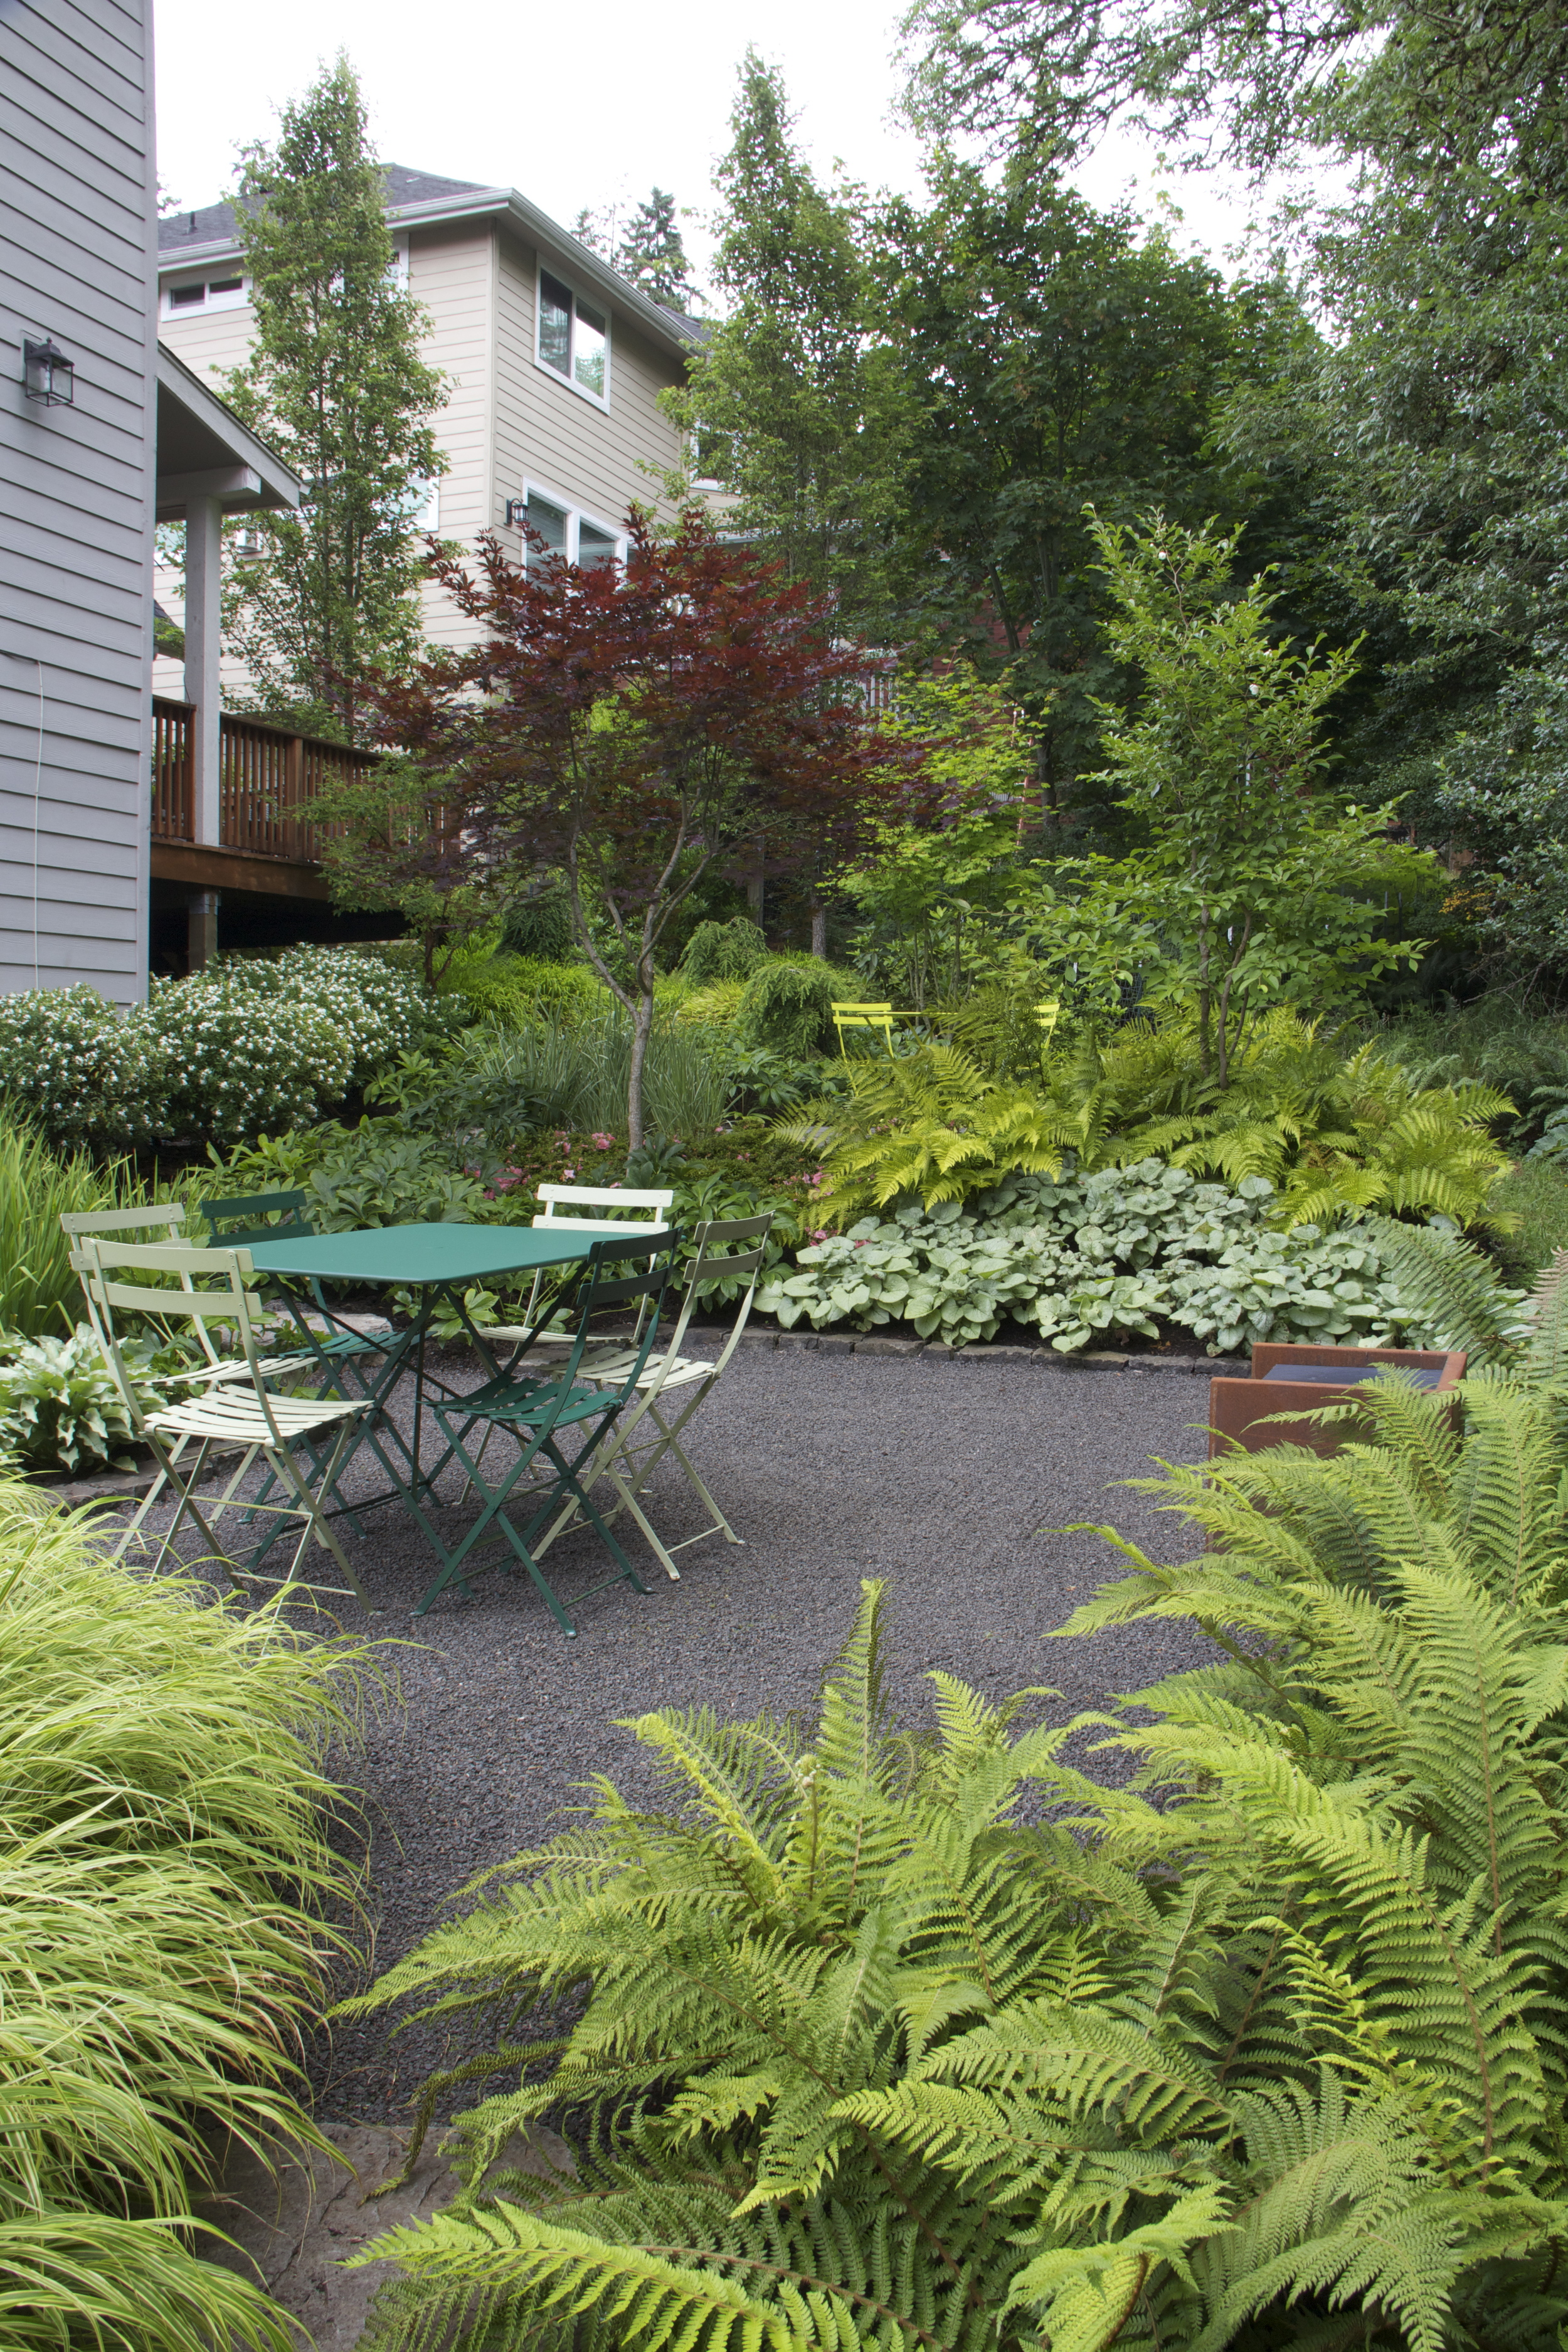 Layered plantings and a gentle slope separate the nearby seating areas.